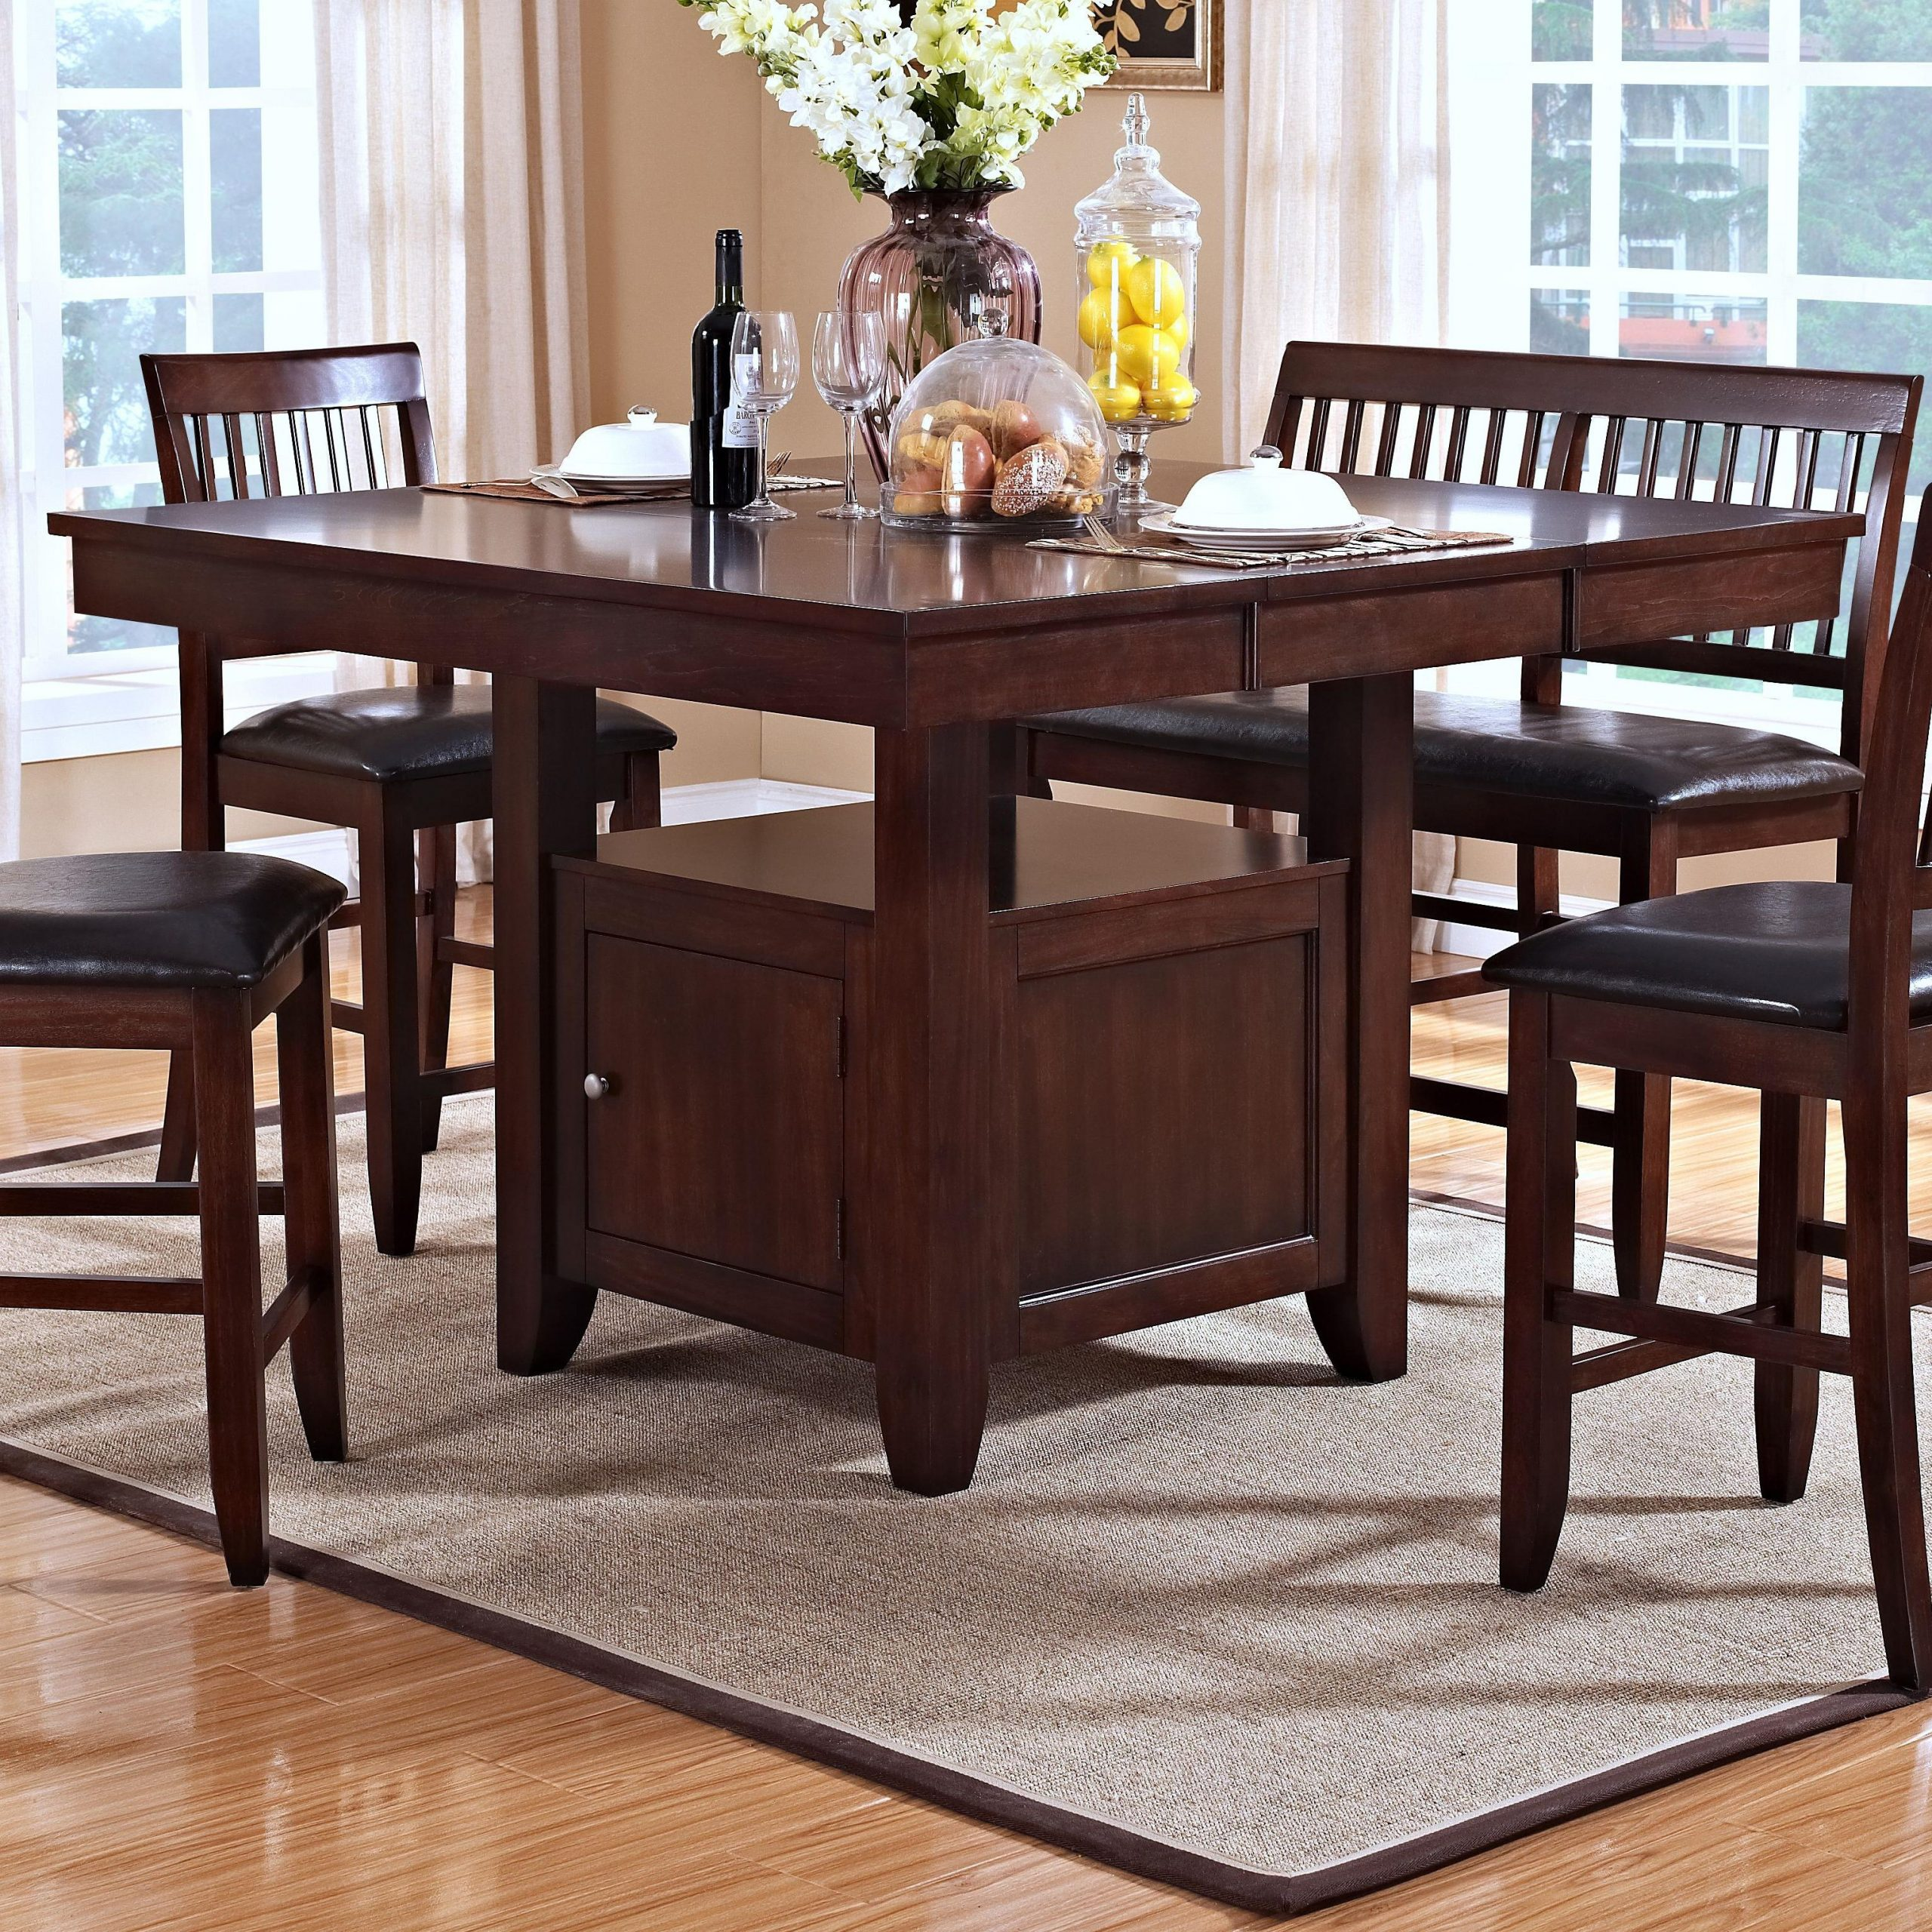 New Classic Kaylee Counter Height Table With Storage Pertaining To 2018 Avondale Counter Height Dining Tables (View 7 of 25)